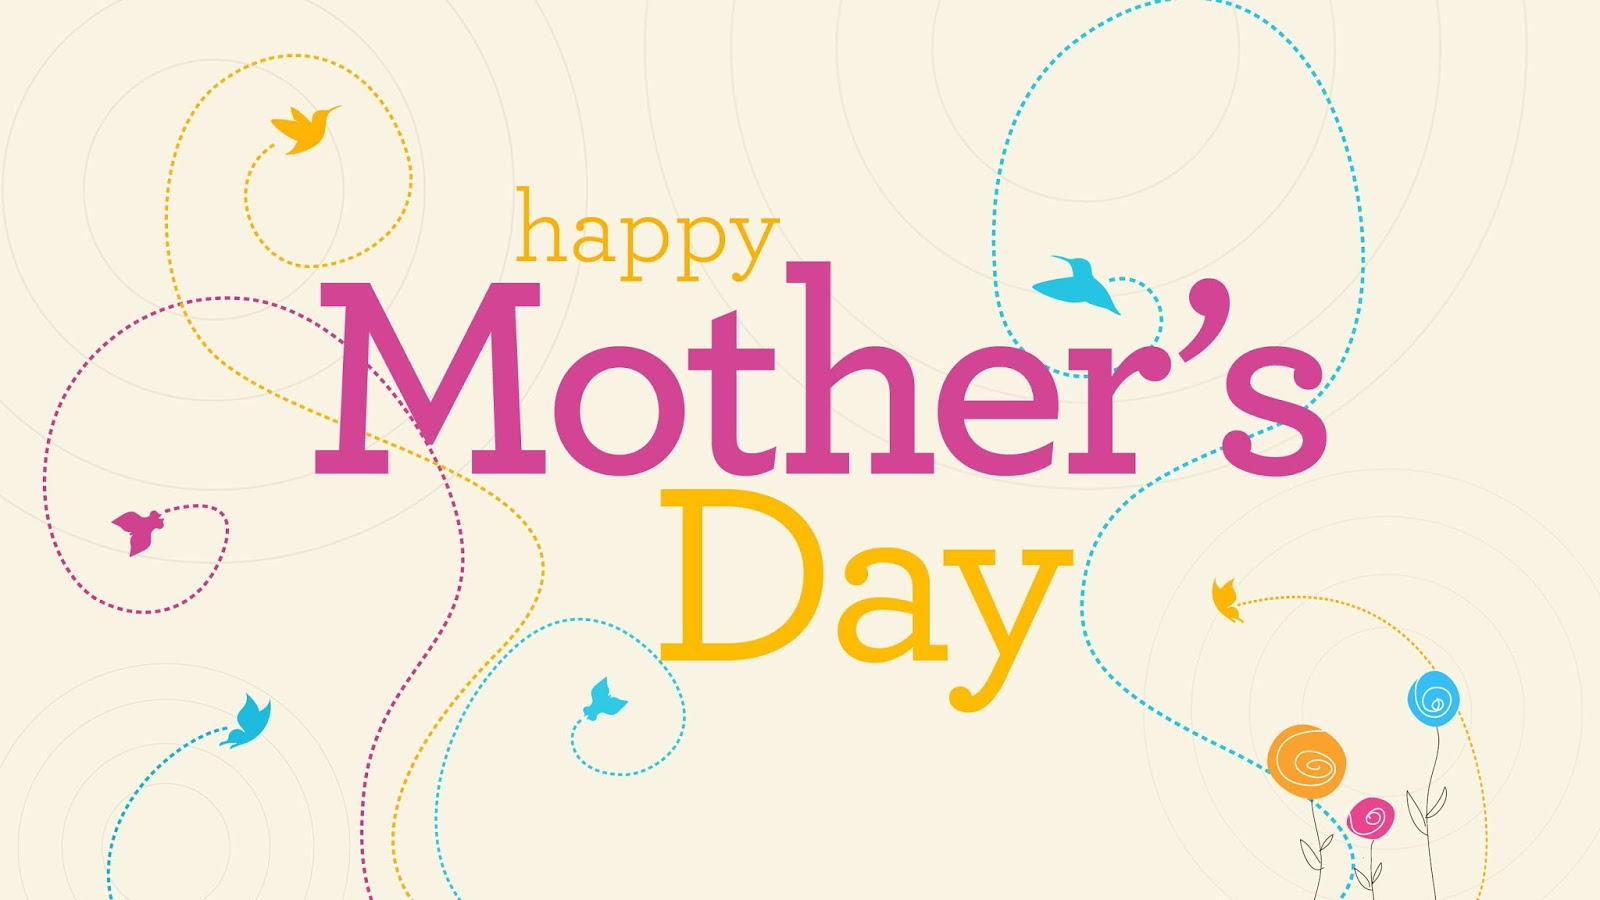 Mother's Day clipart gentle Day upload 4 Day